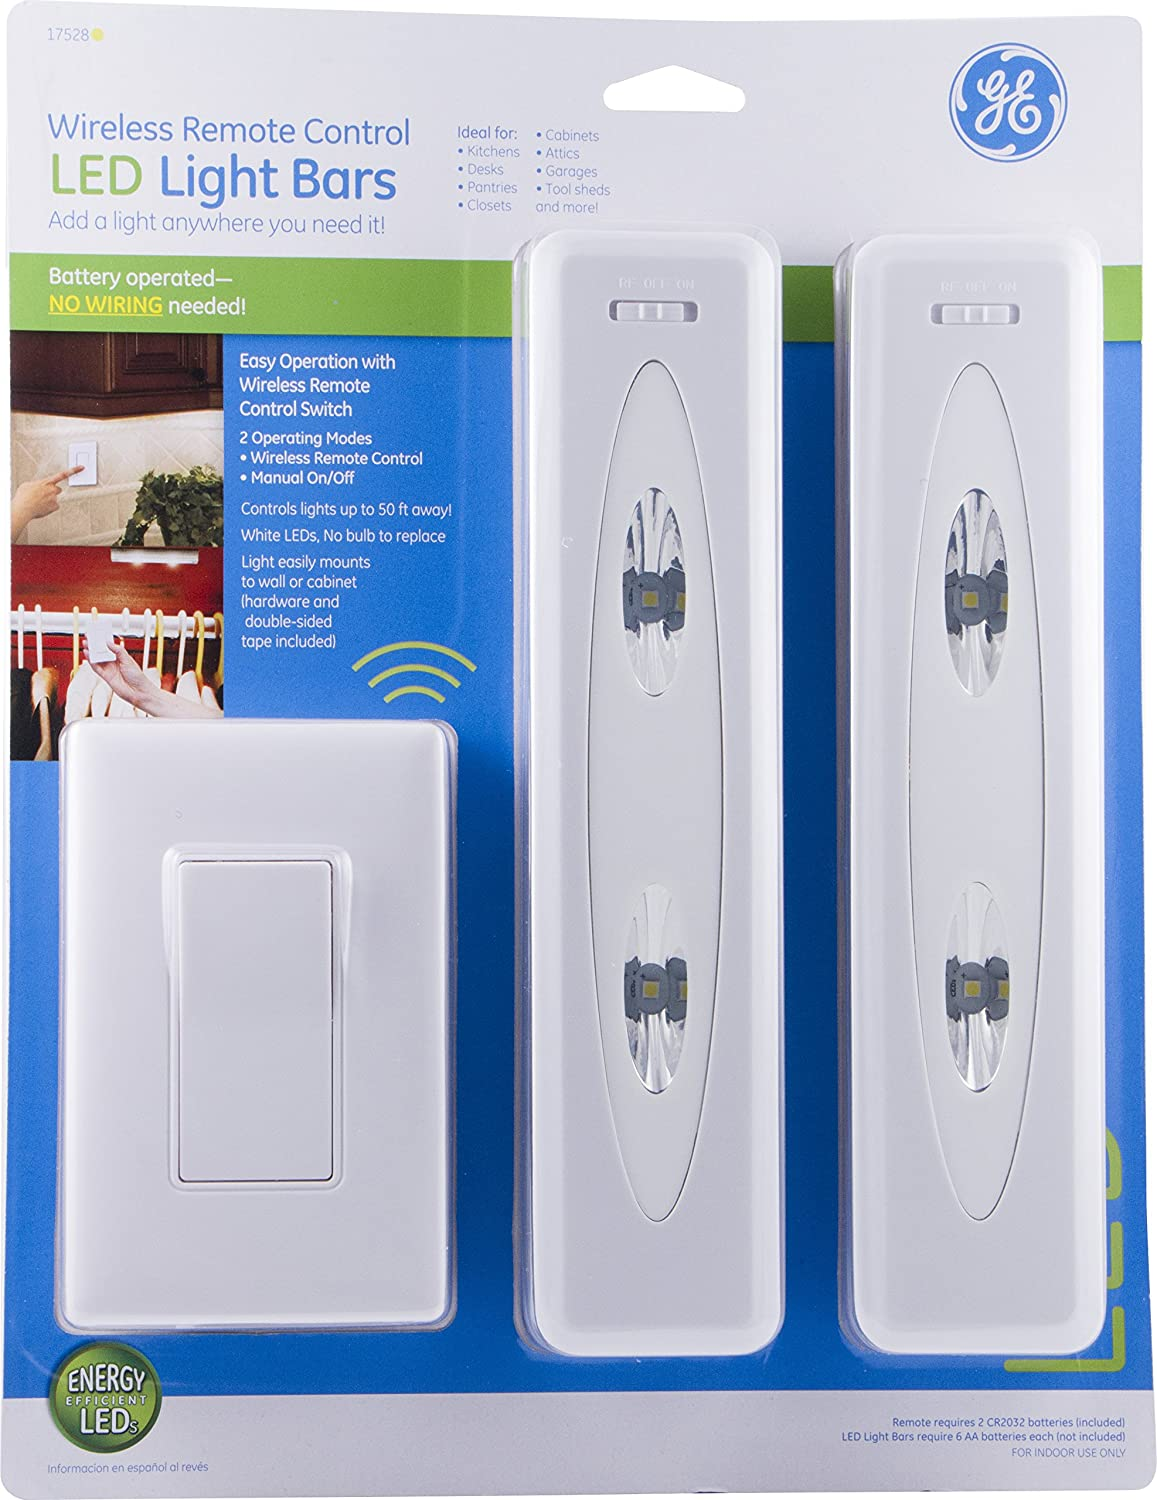 Ge Wireless Remote Control Led Light Bars 2 Pack Bright White Light Battery Operated Under Cabinet Lighting No Wiring Needed Easy To Install